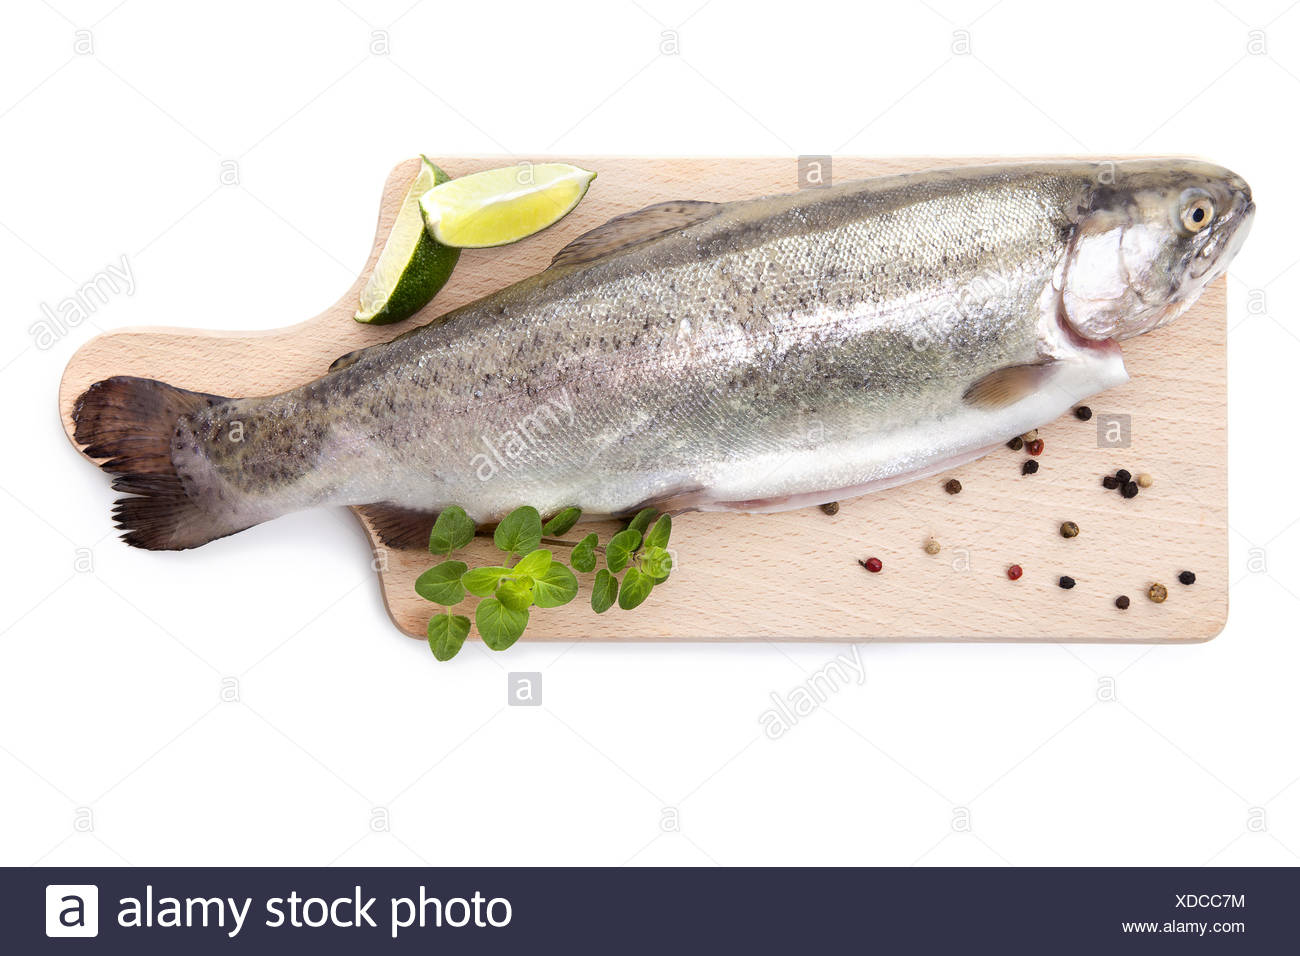 Fresh trout on wooden kitchen board. - Stock Image